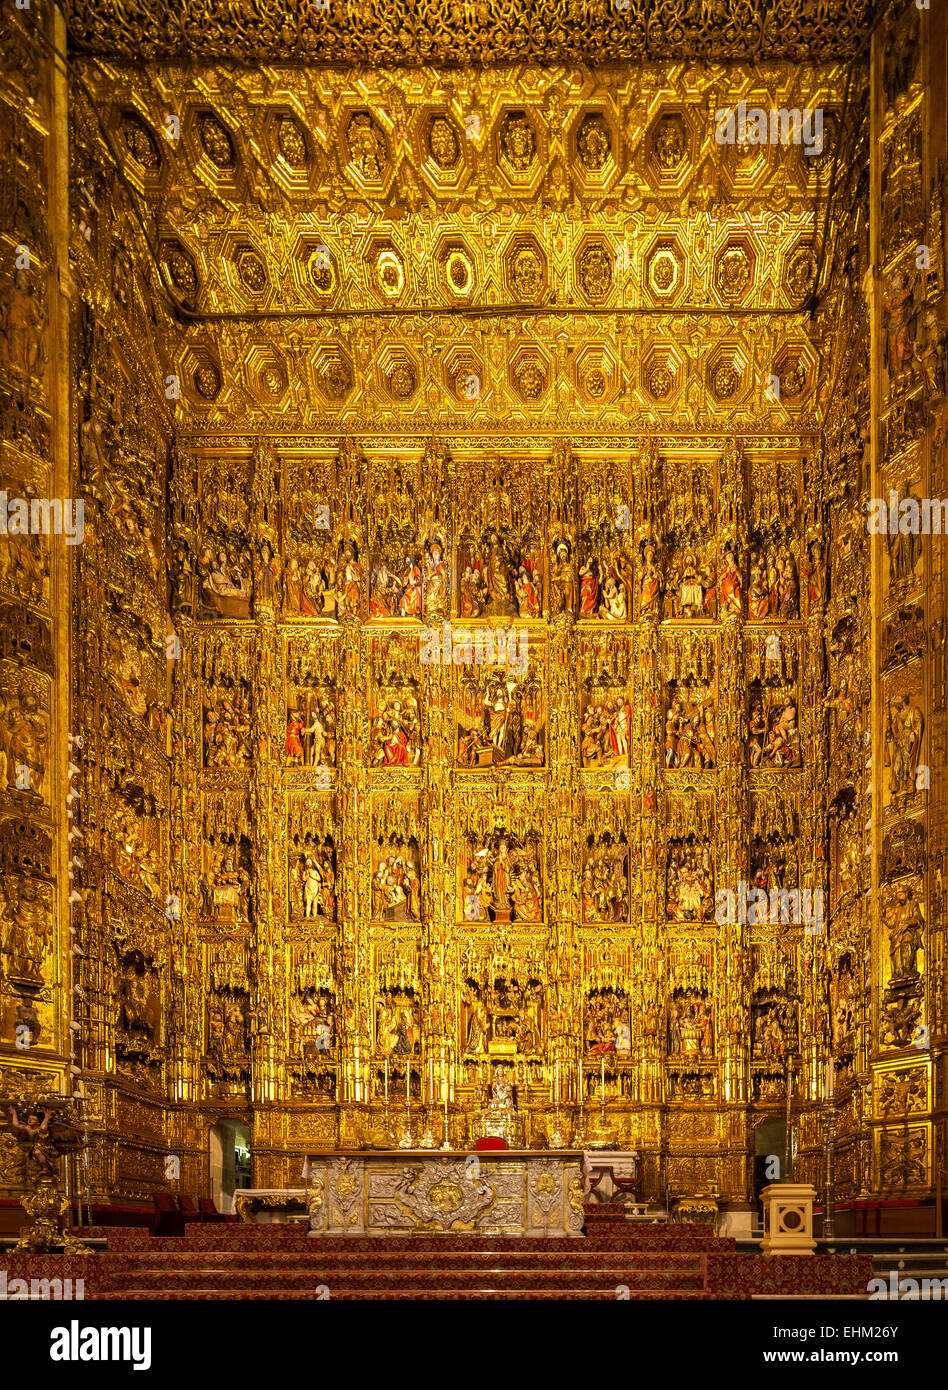 https://c7.alamy.com/comp/EHM26Y/the-largest-altarpiece-retablo-reredos-of-the-world-in-seville-cathedral-EHM26Y.jpg